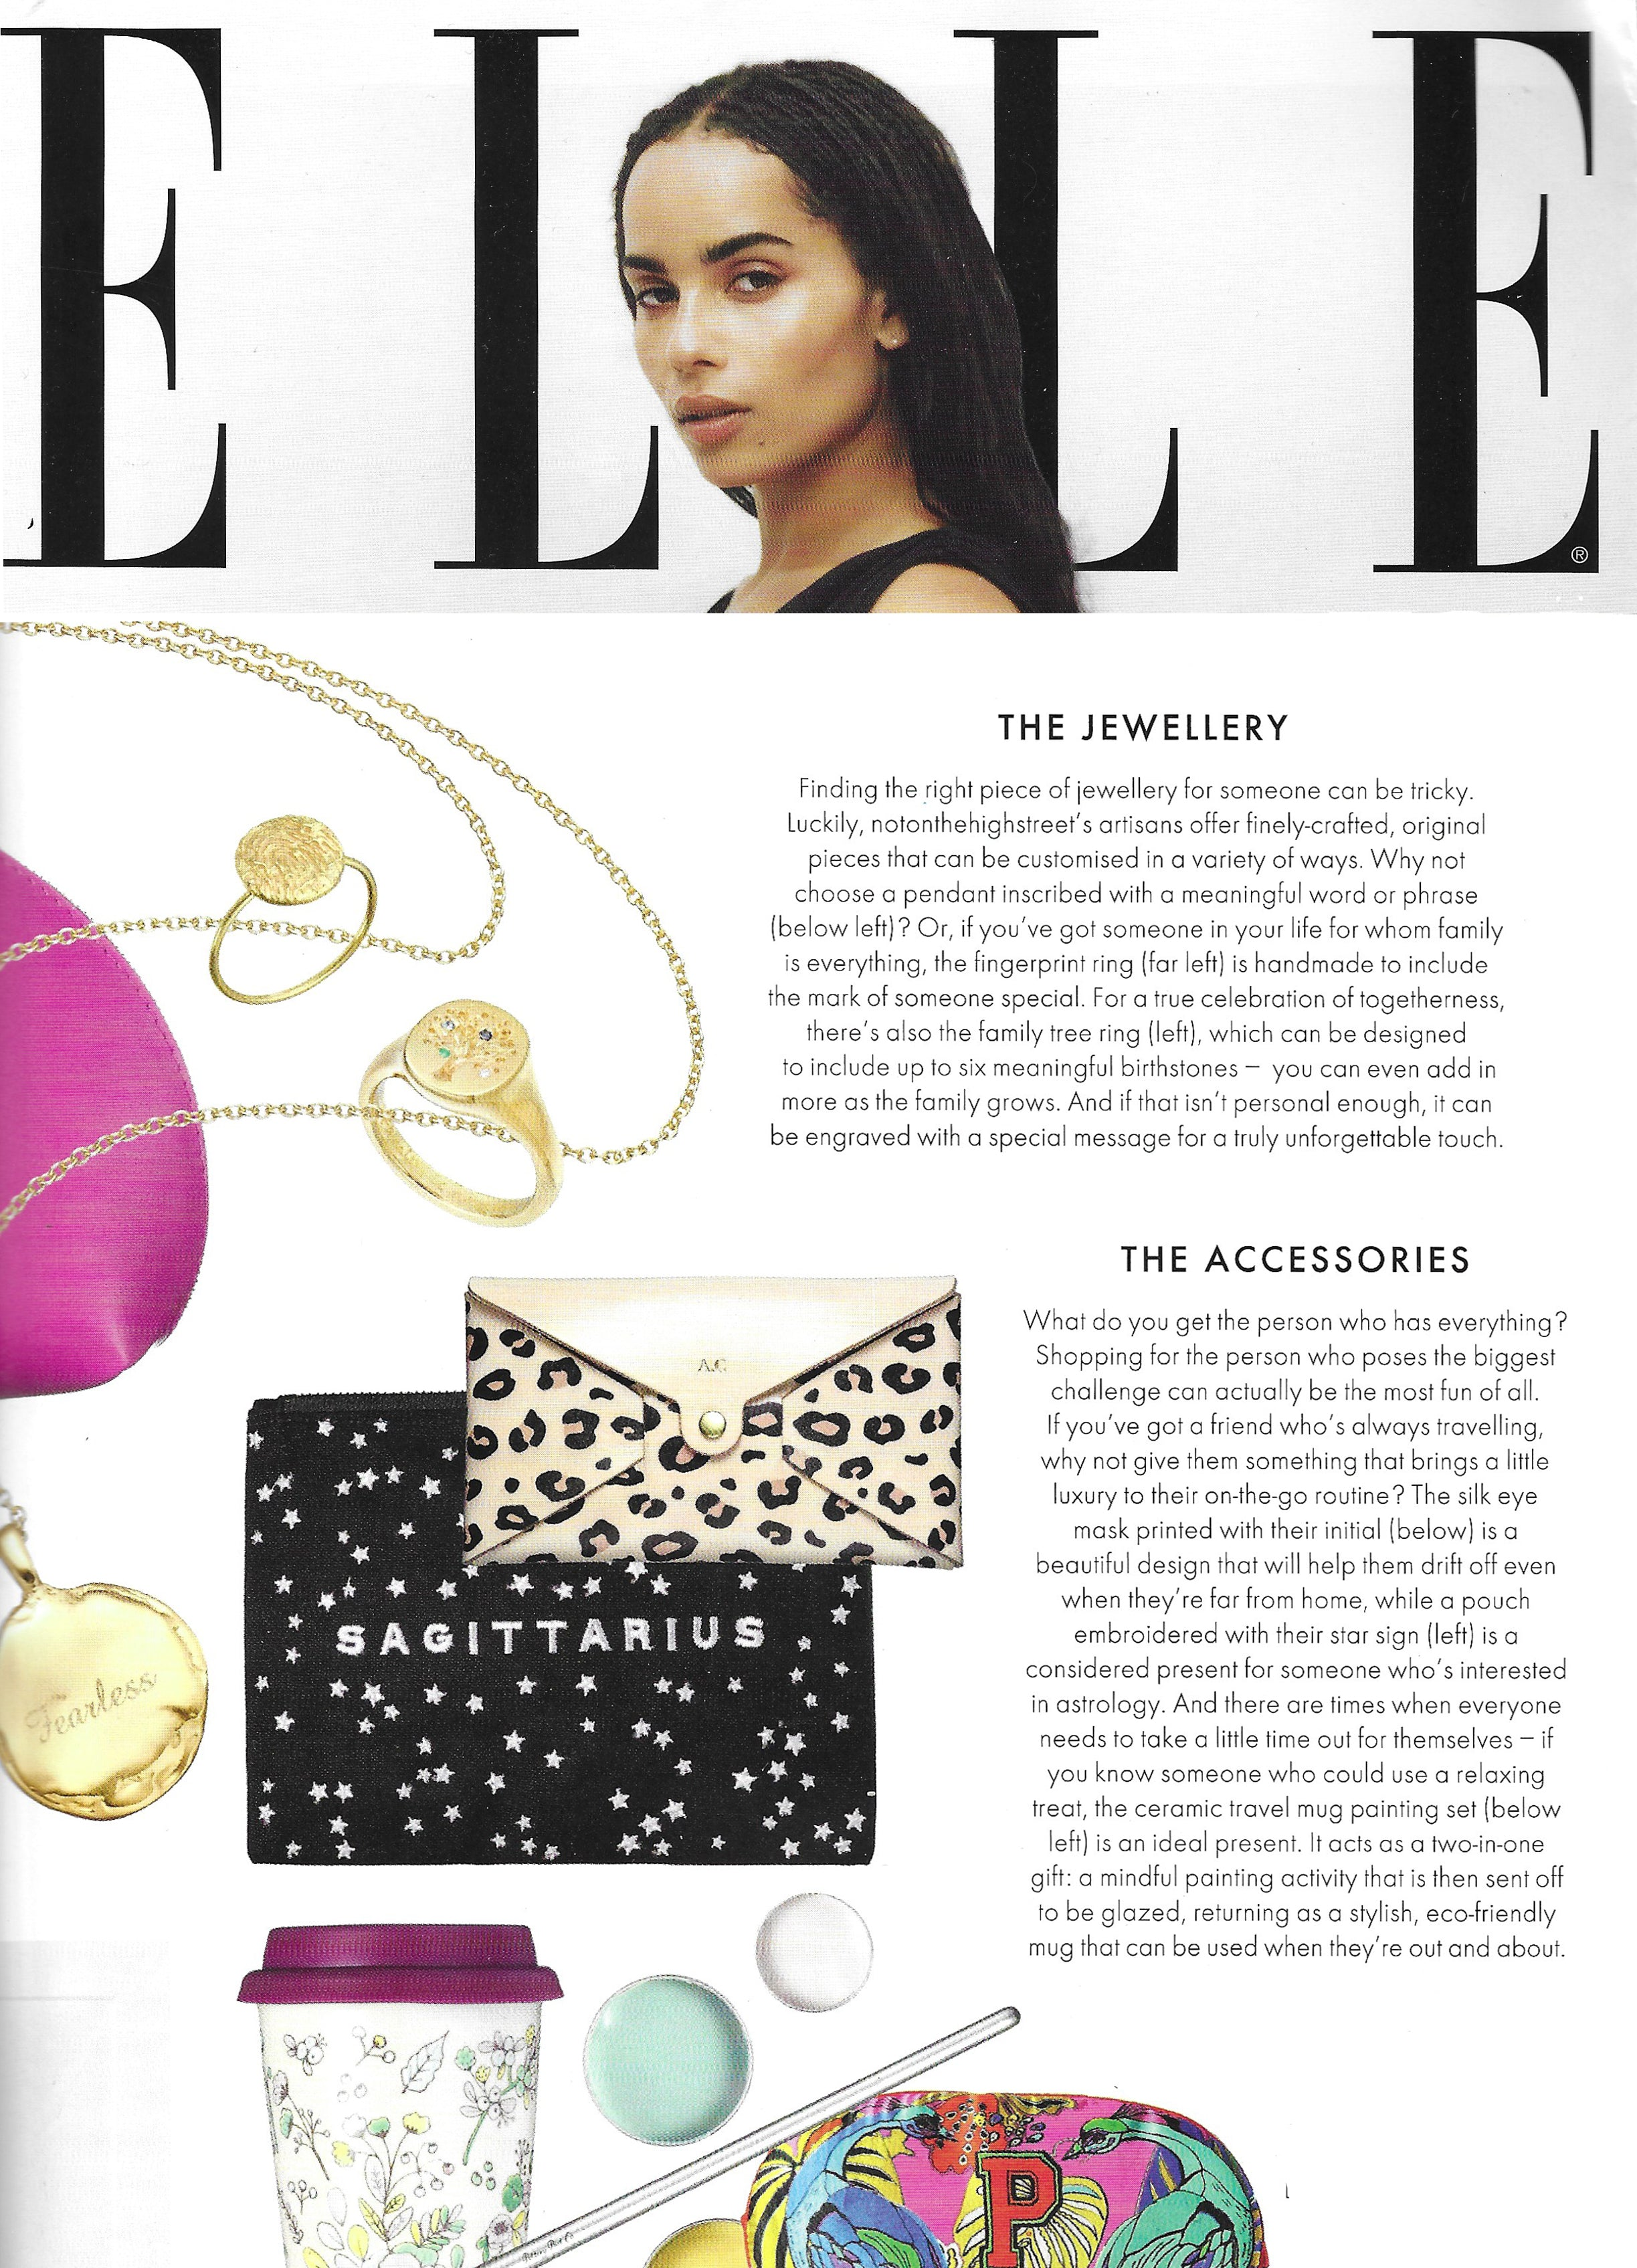 Elle press coverage